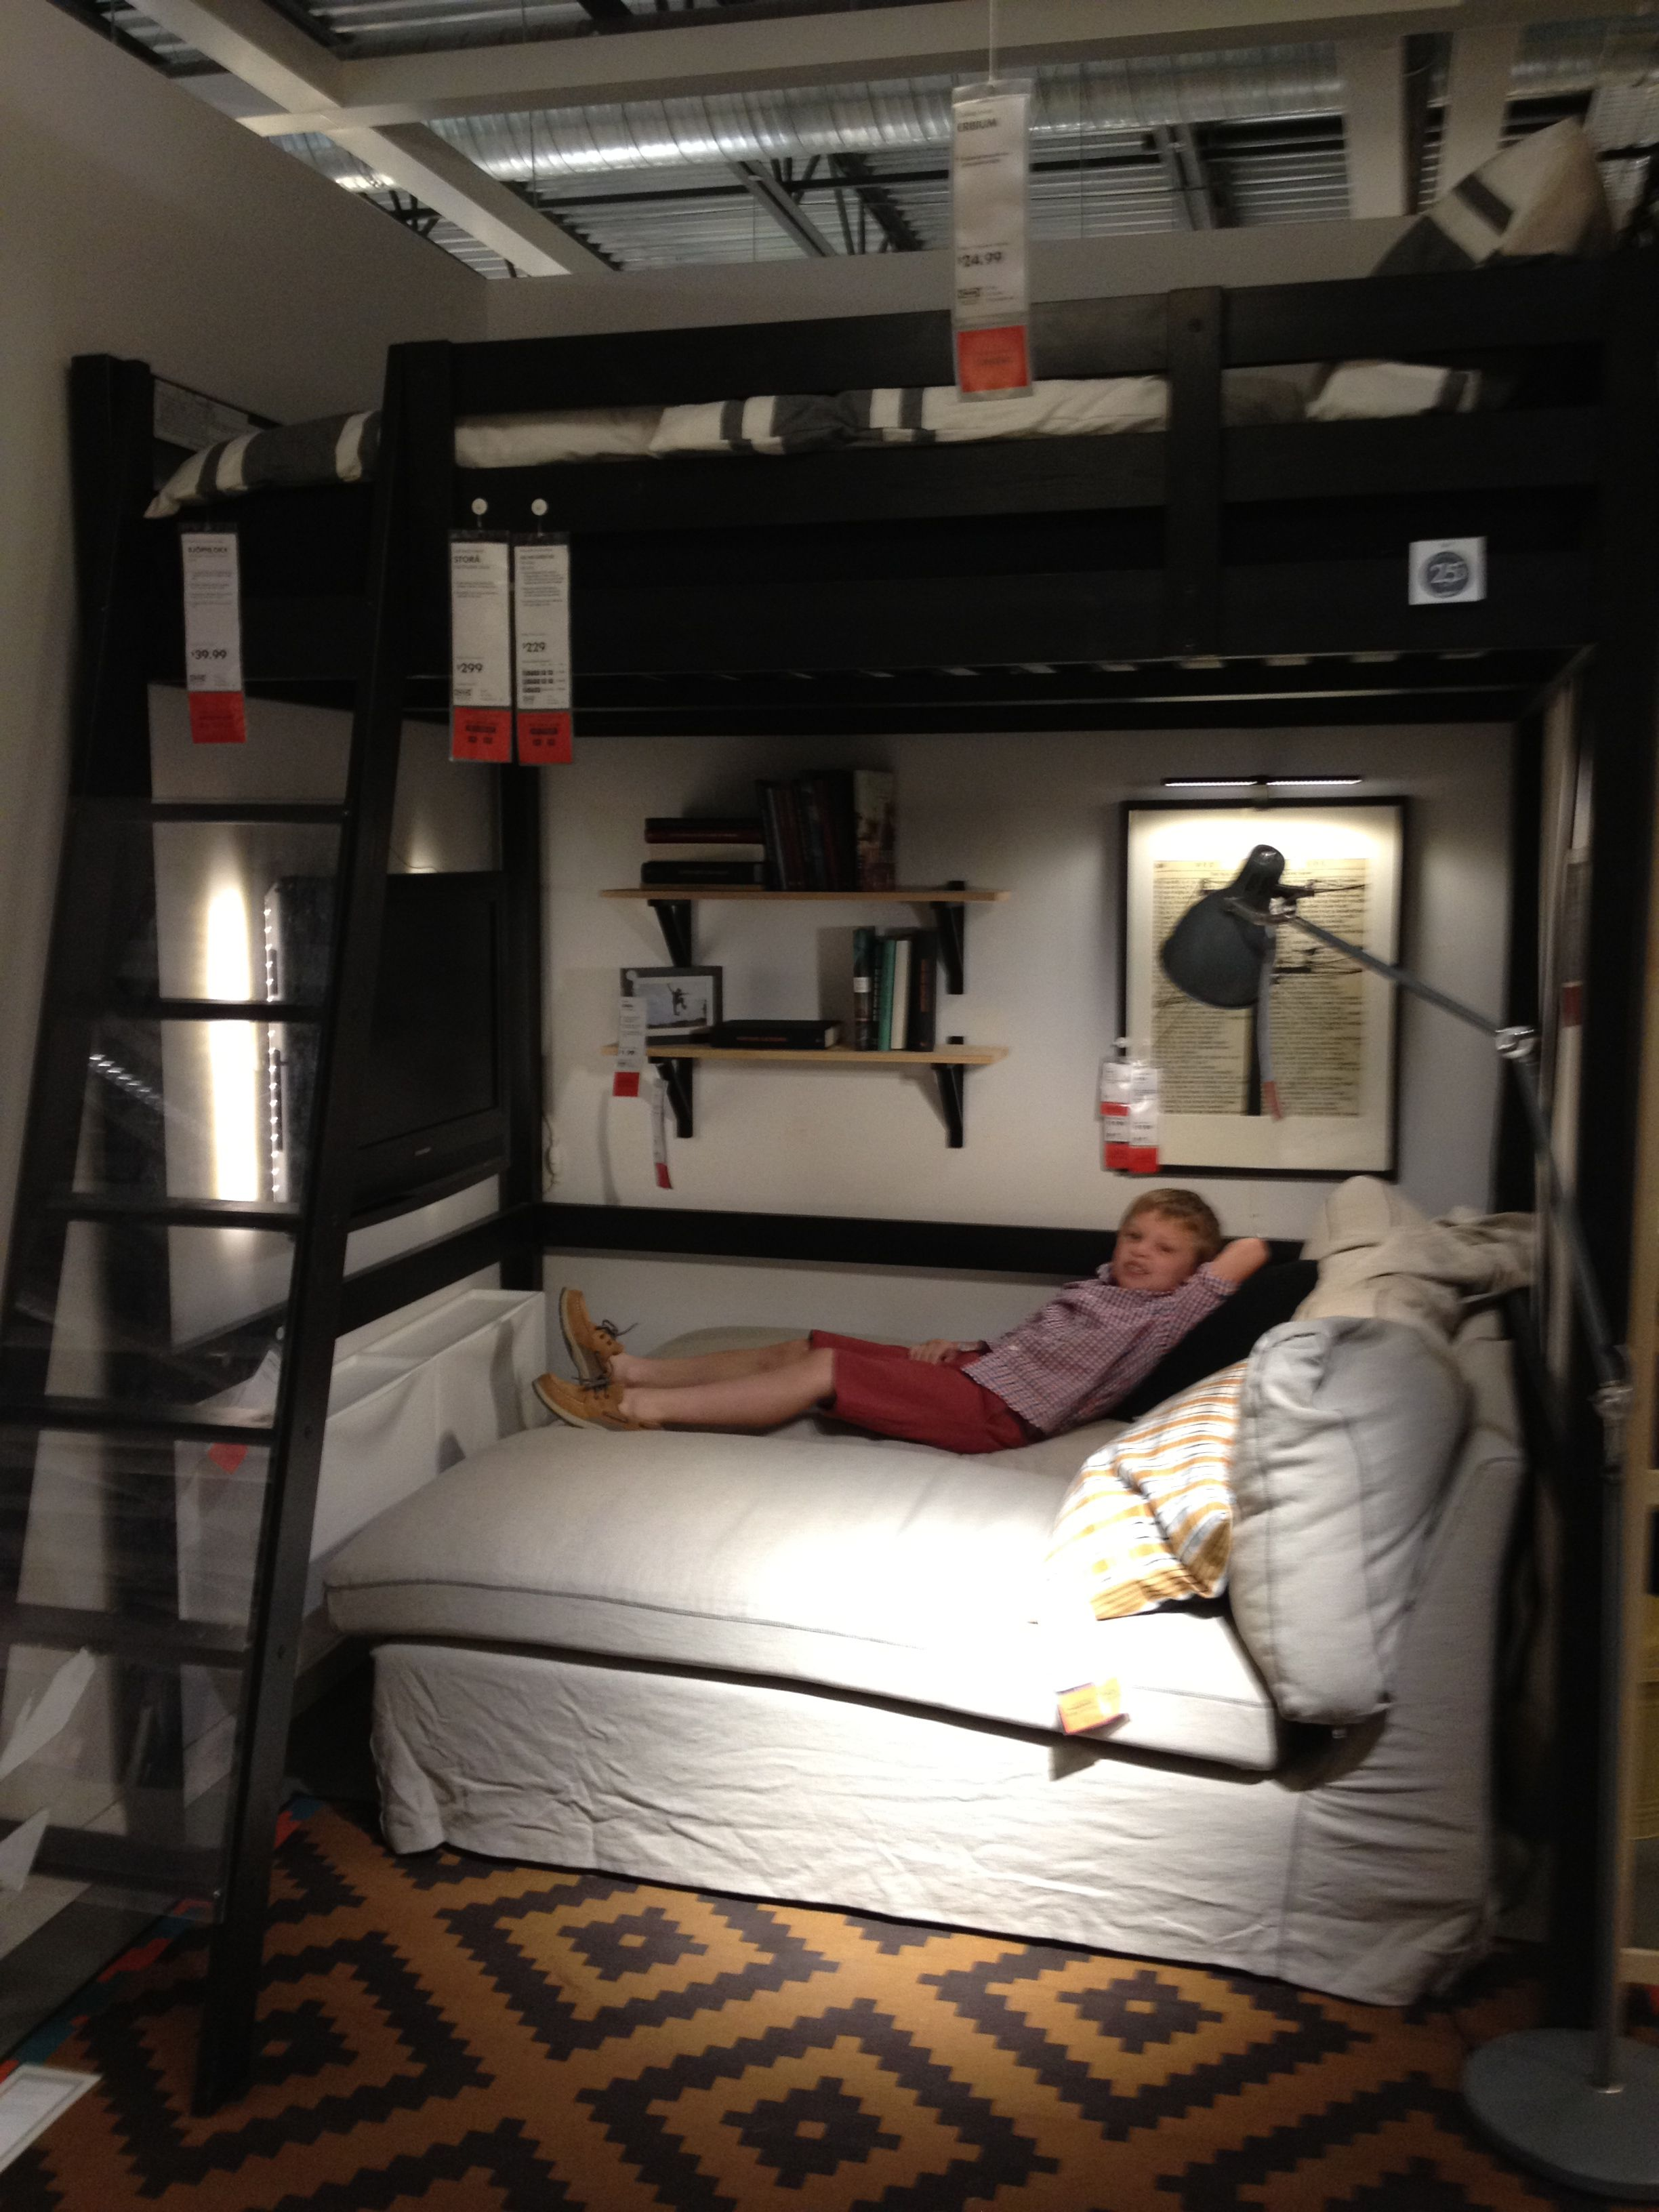 Advantages Of Ikea Full Size Loft Bed Ikea bedroom loft bed with chaise underneath TV on the wall